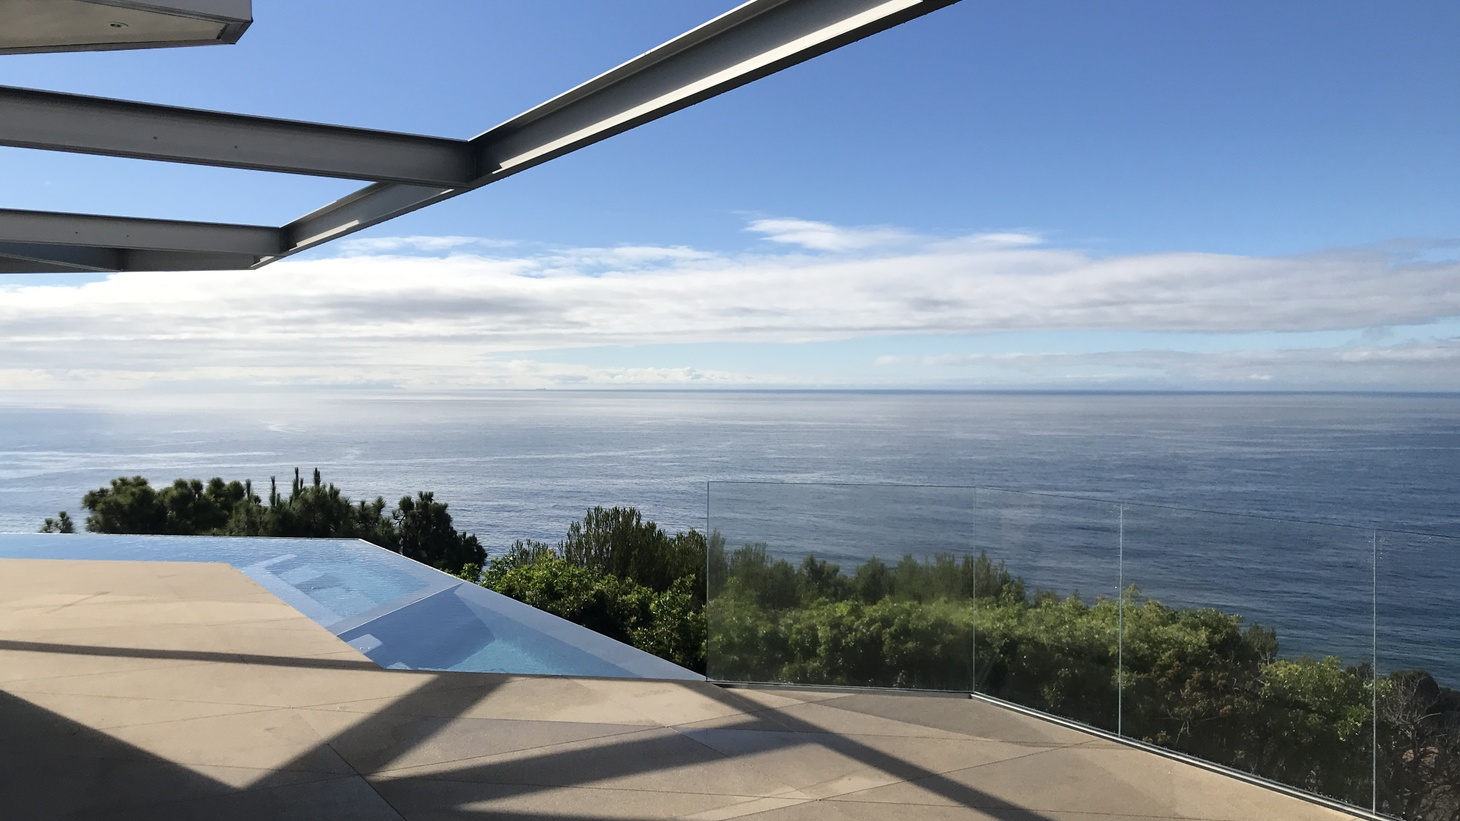 Horizon House, designed by Geoffrey von Oeyen, completed in 2018, follows the line of the hill crest with chamfered overhang, infinity pool and stunning view.